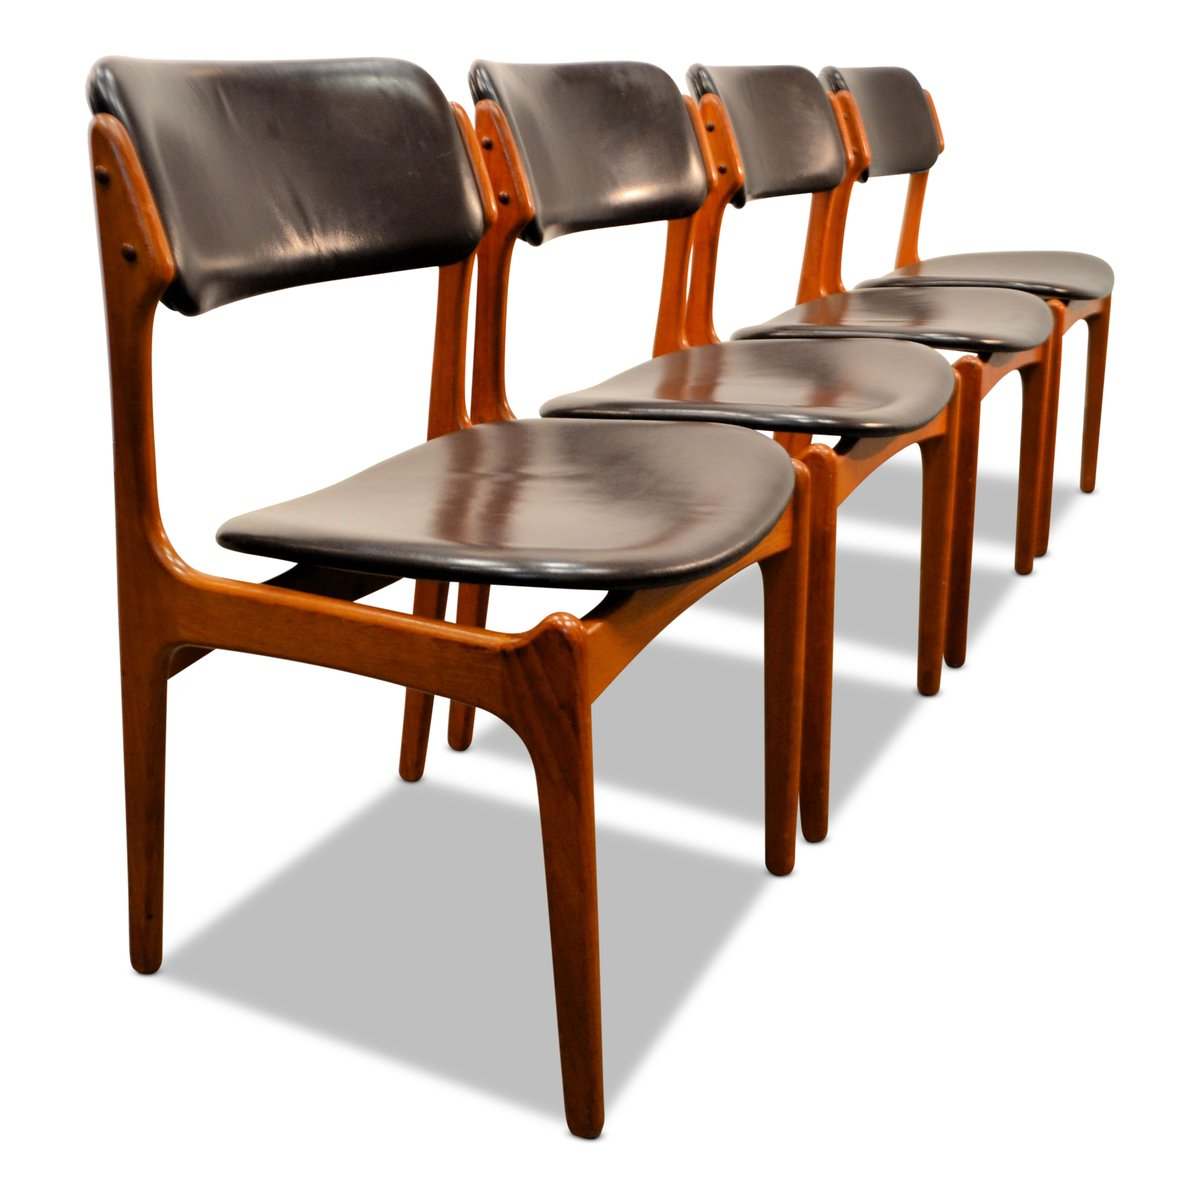 Model 49 Teak Dining Chairs By Erik Buch For Odense Mobelfabrik 1960s Set Of 4 Sale At Pamono